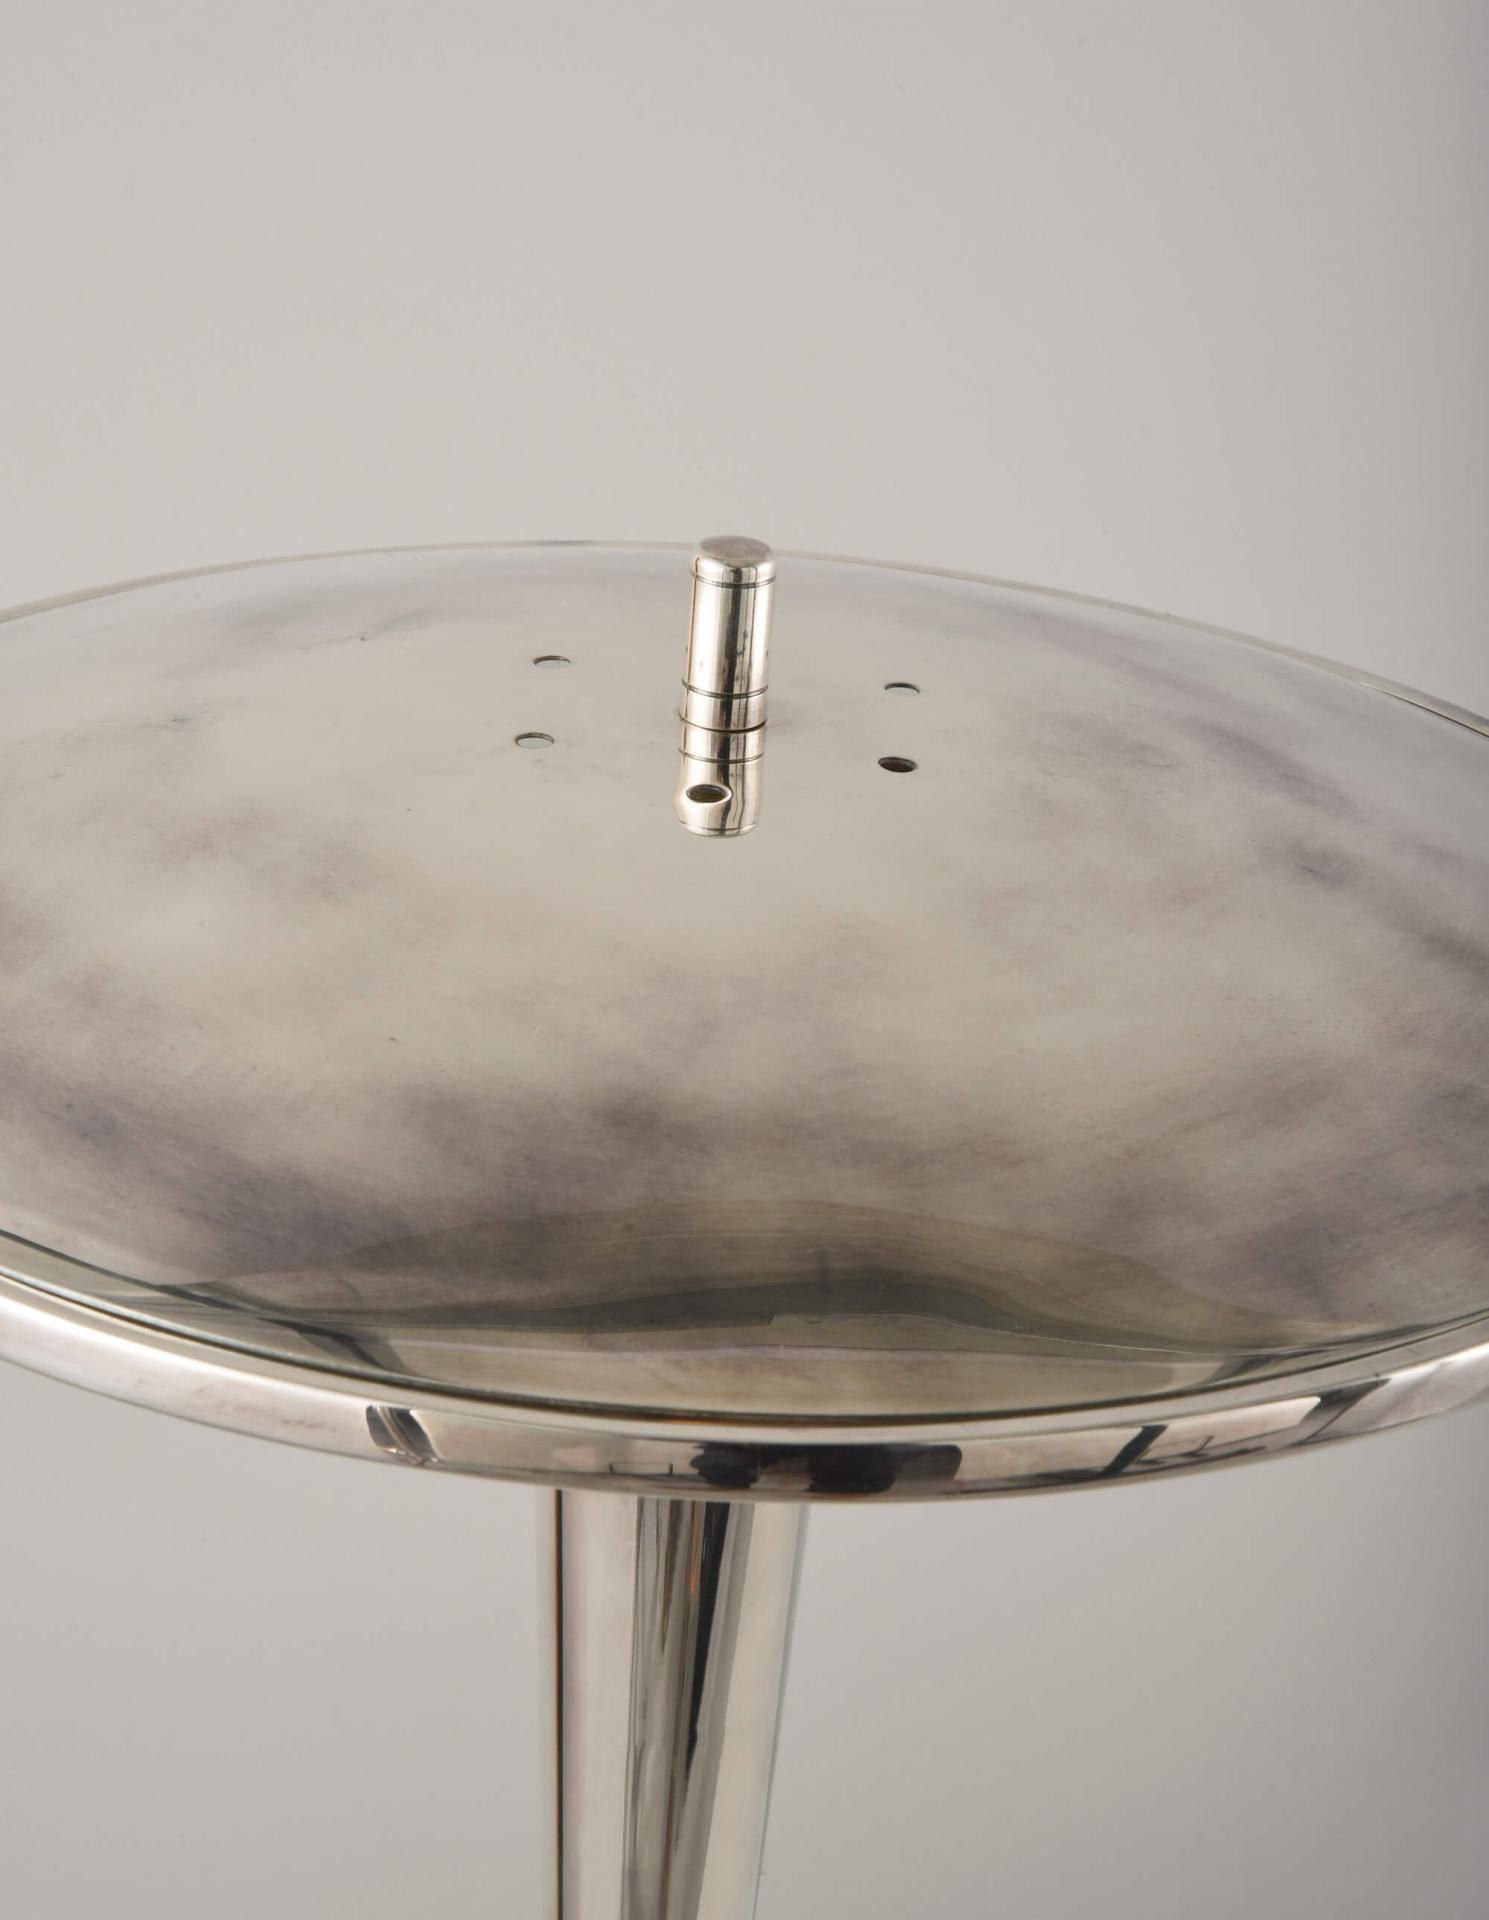 Roswell Light by Collier Webb seen in our Antique Silver finish